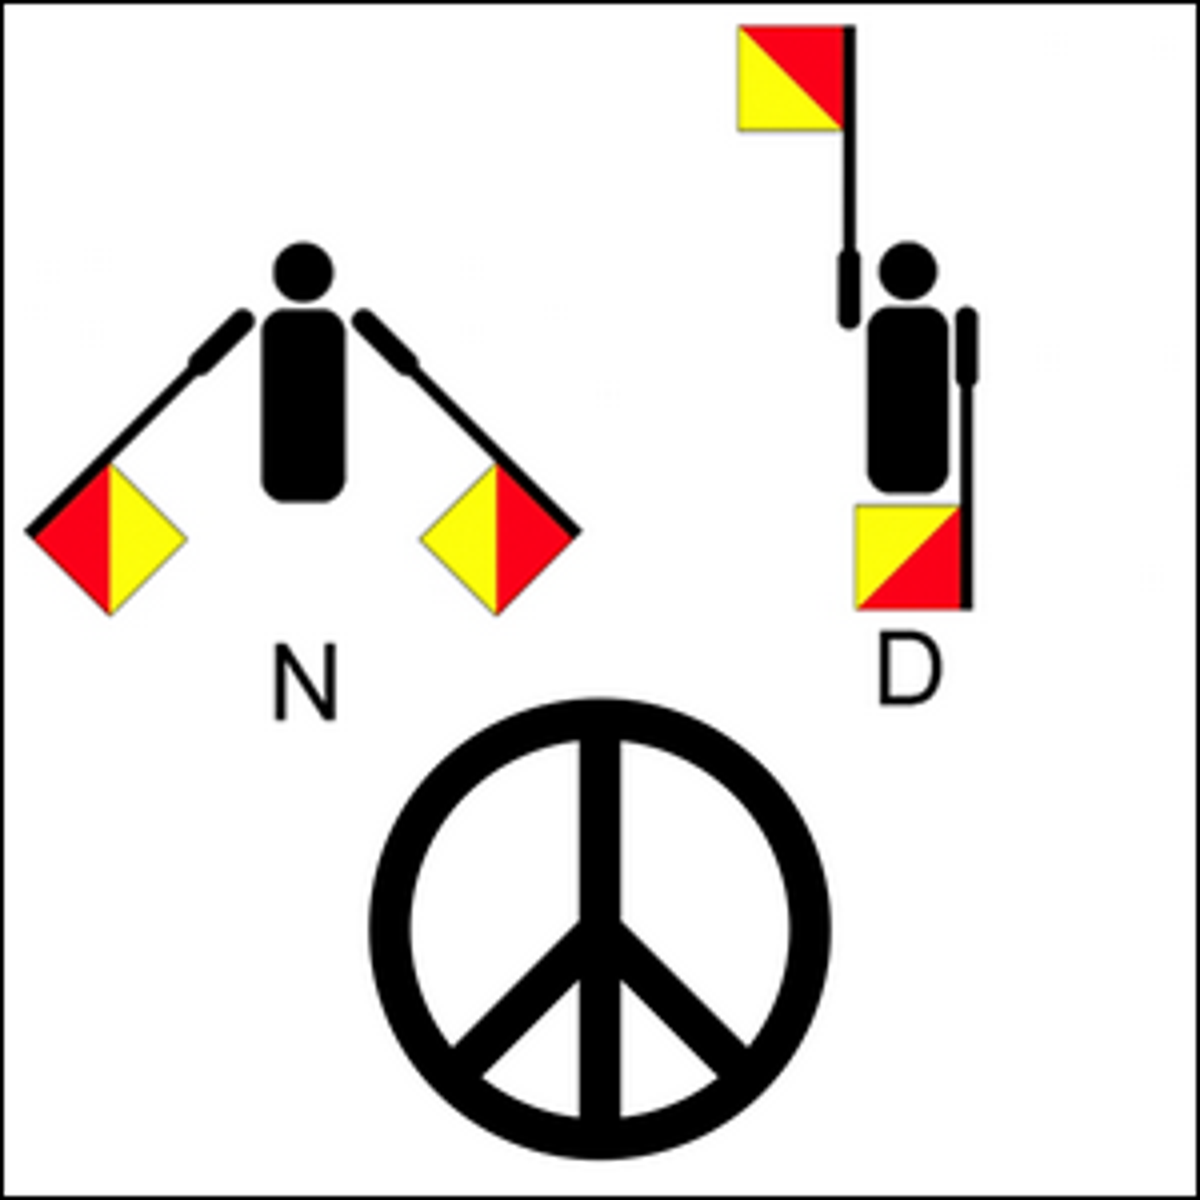 The flag semaphore for the letters N and D next to a peace symbol.